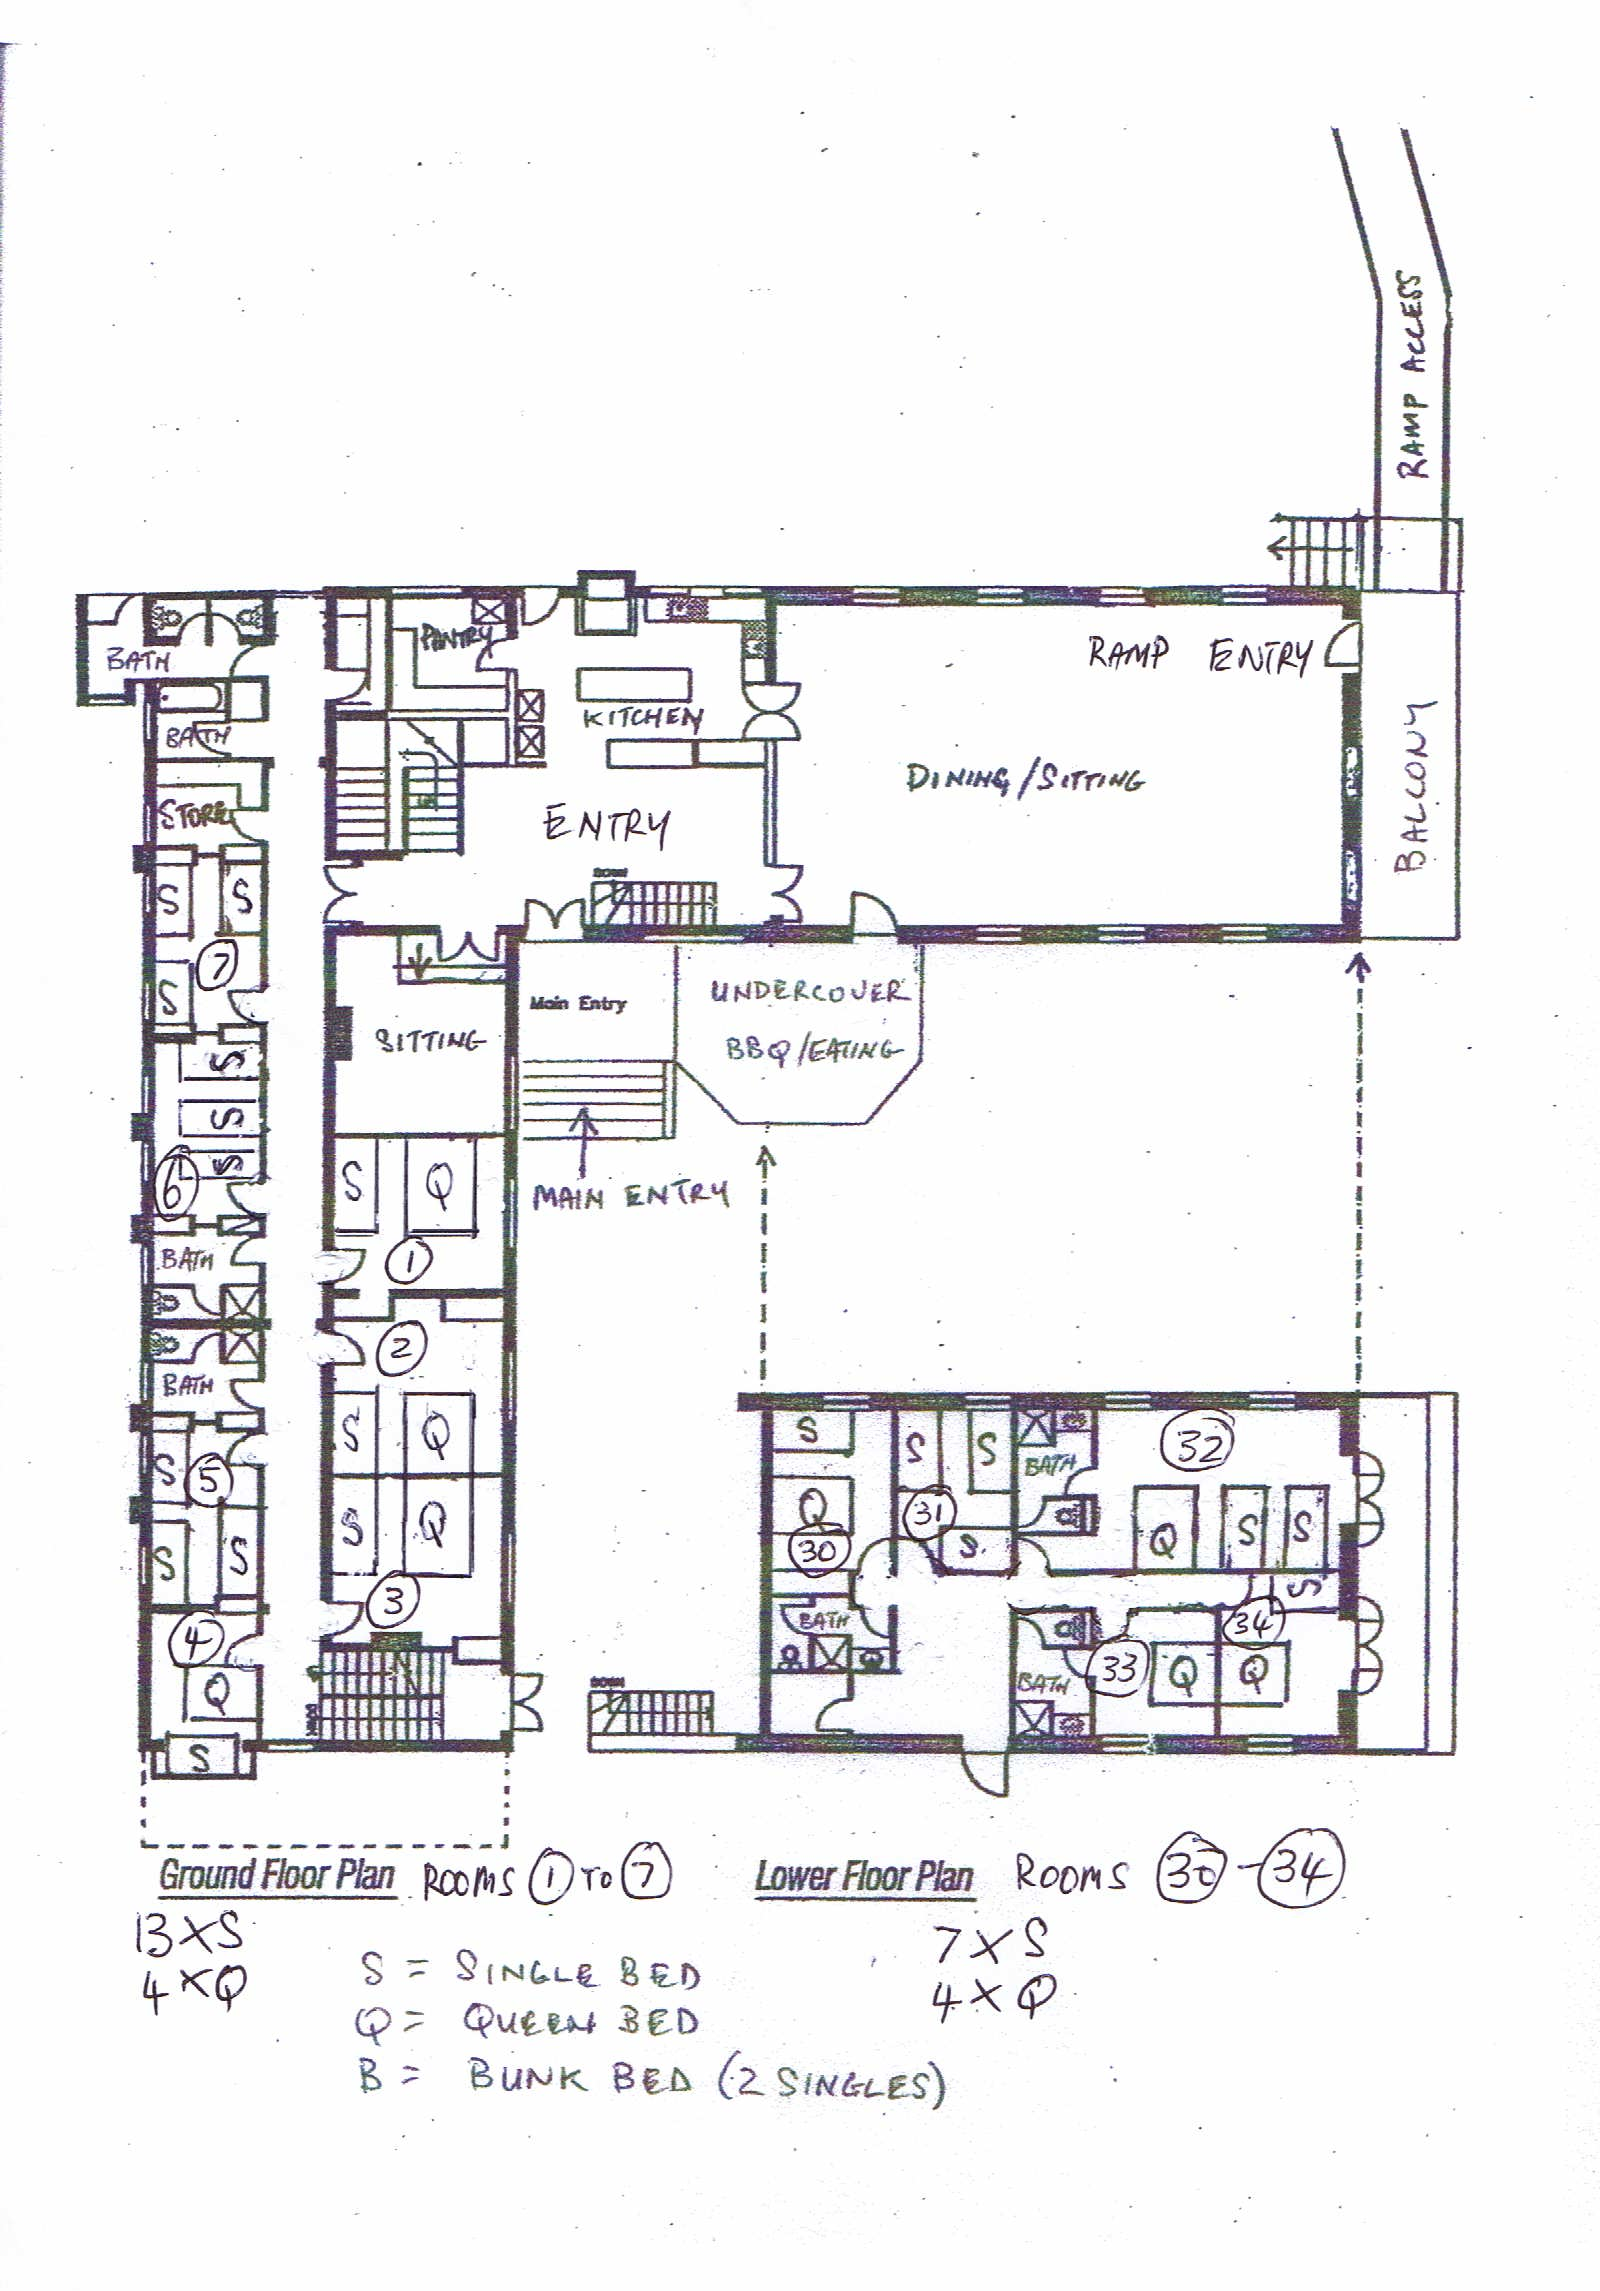 Ground floor and Lower floor layout and room numbers